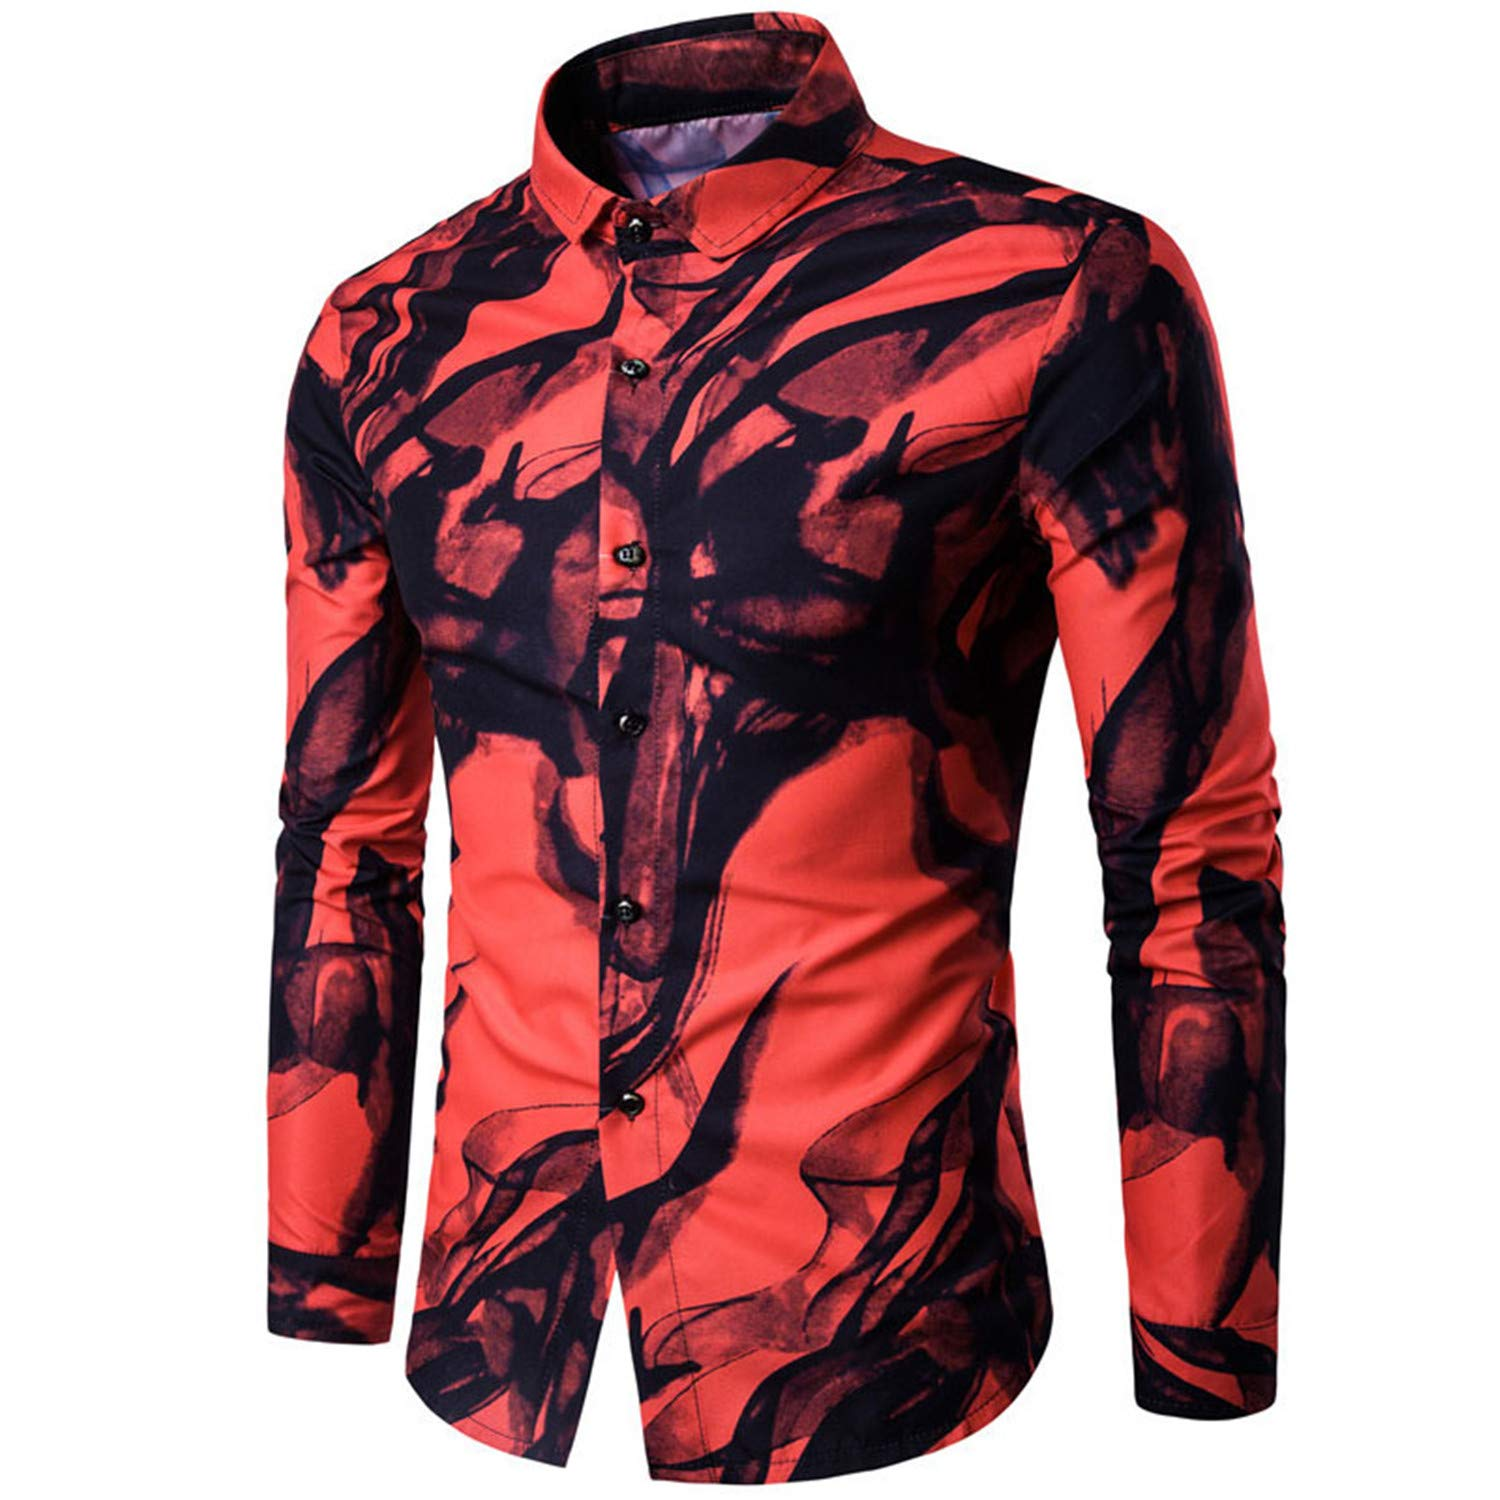 Men Shirt Luxury Brand Long Sleeve Tops Ink Printed Slim Fit Casual Shirt China Style Men Clothes